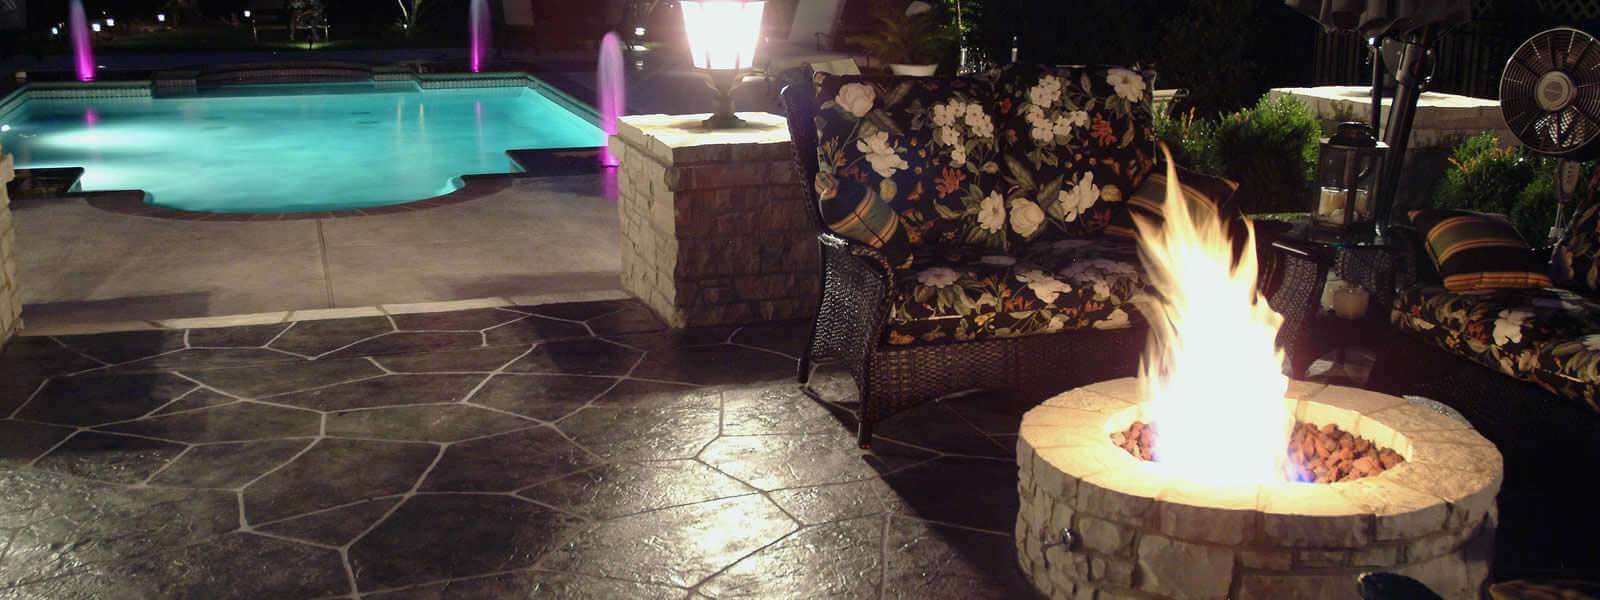 Inviting concrete patio… Relax and enjoy!